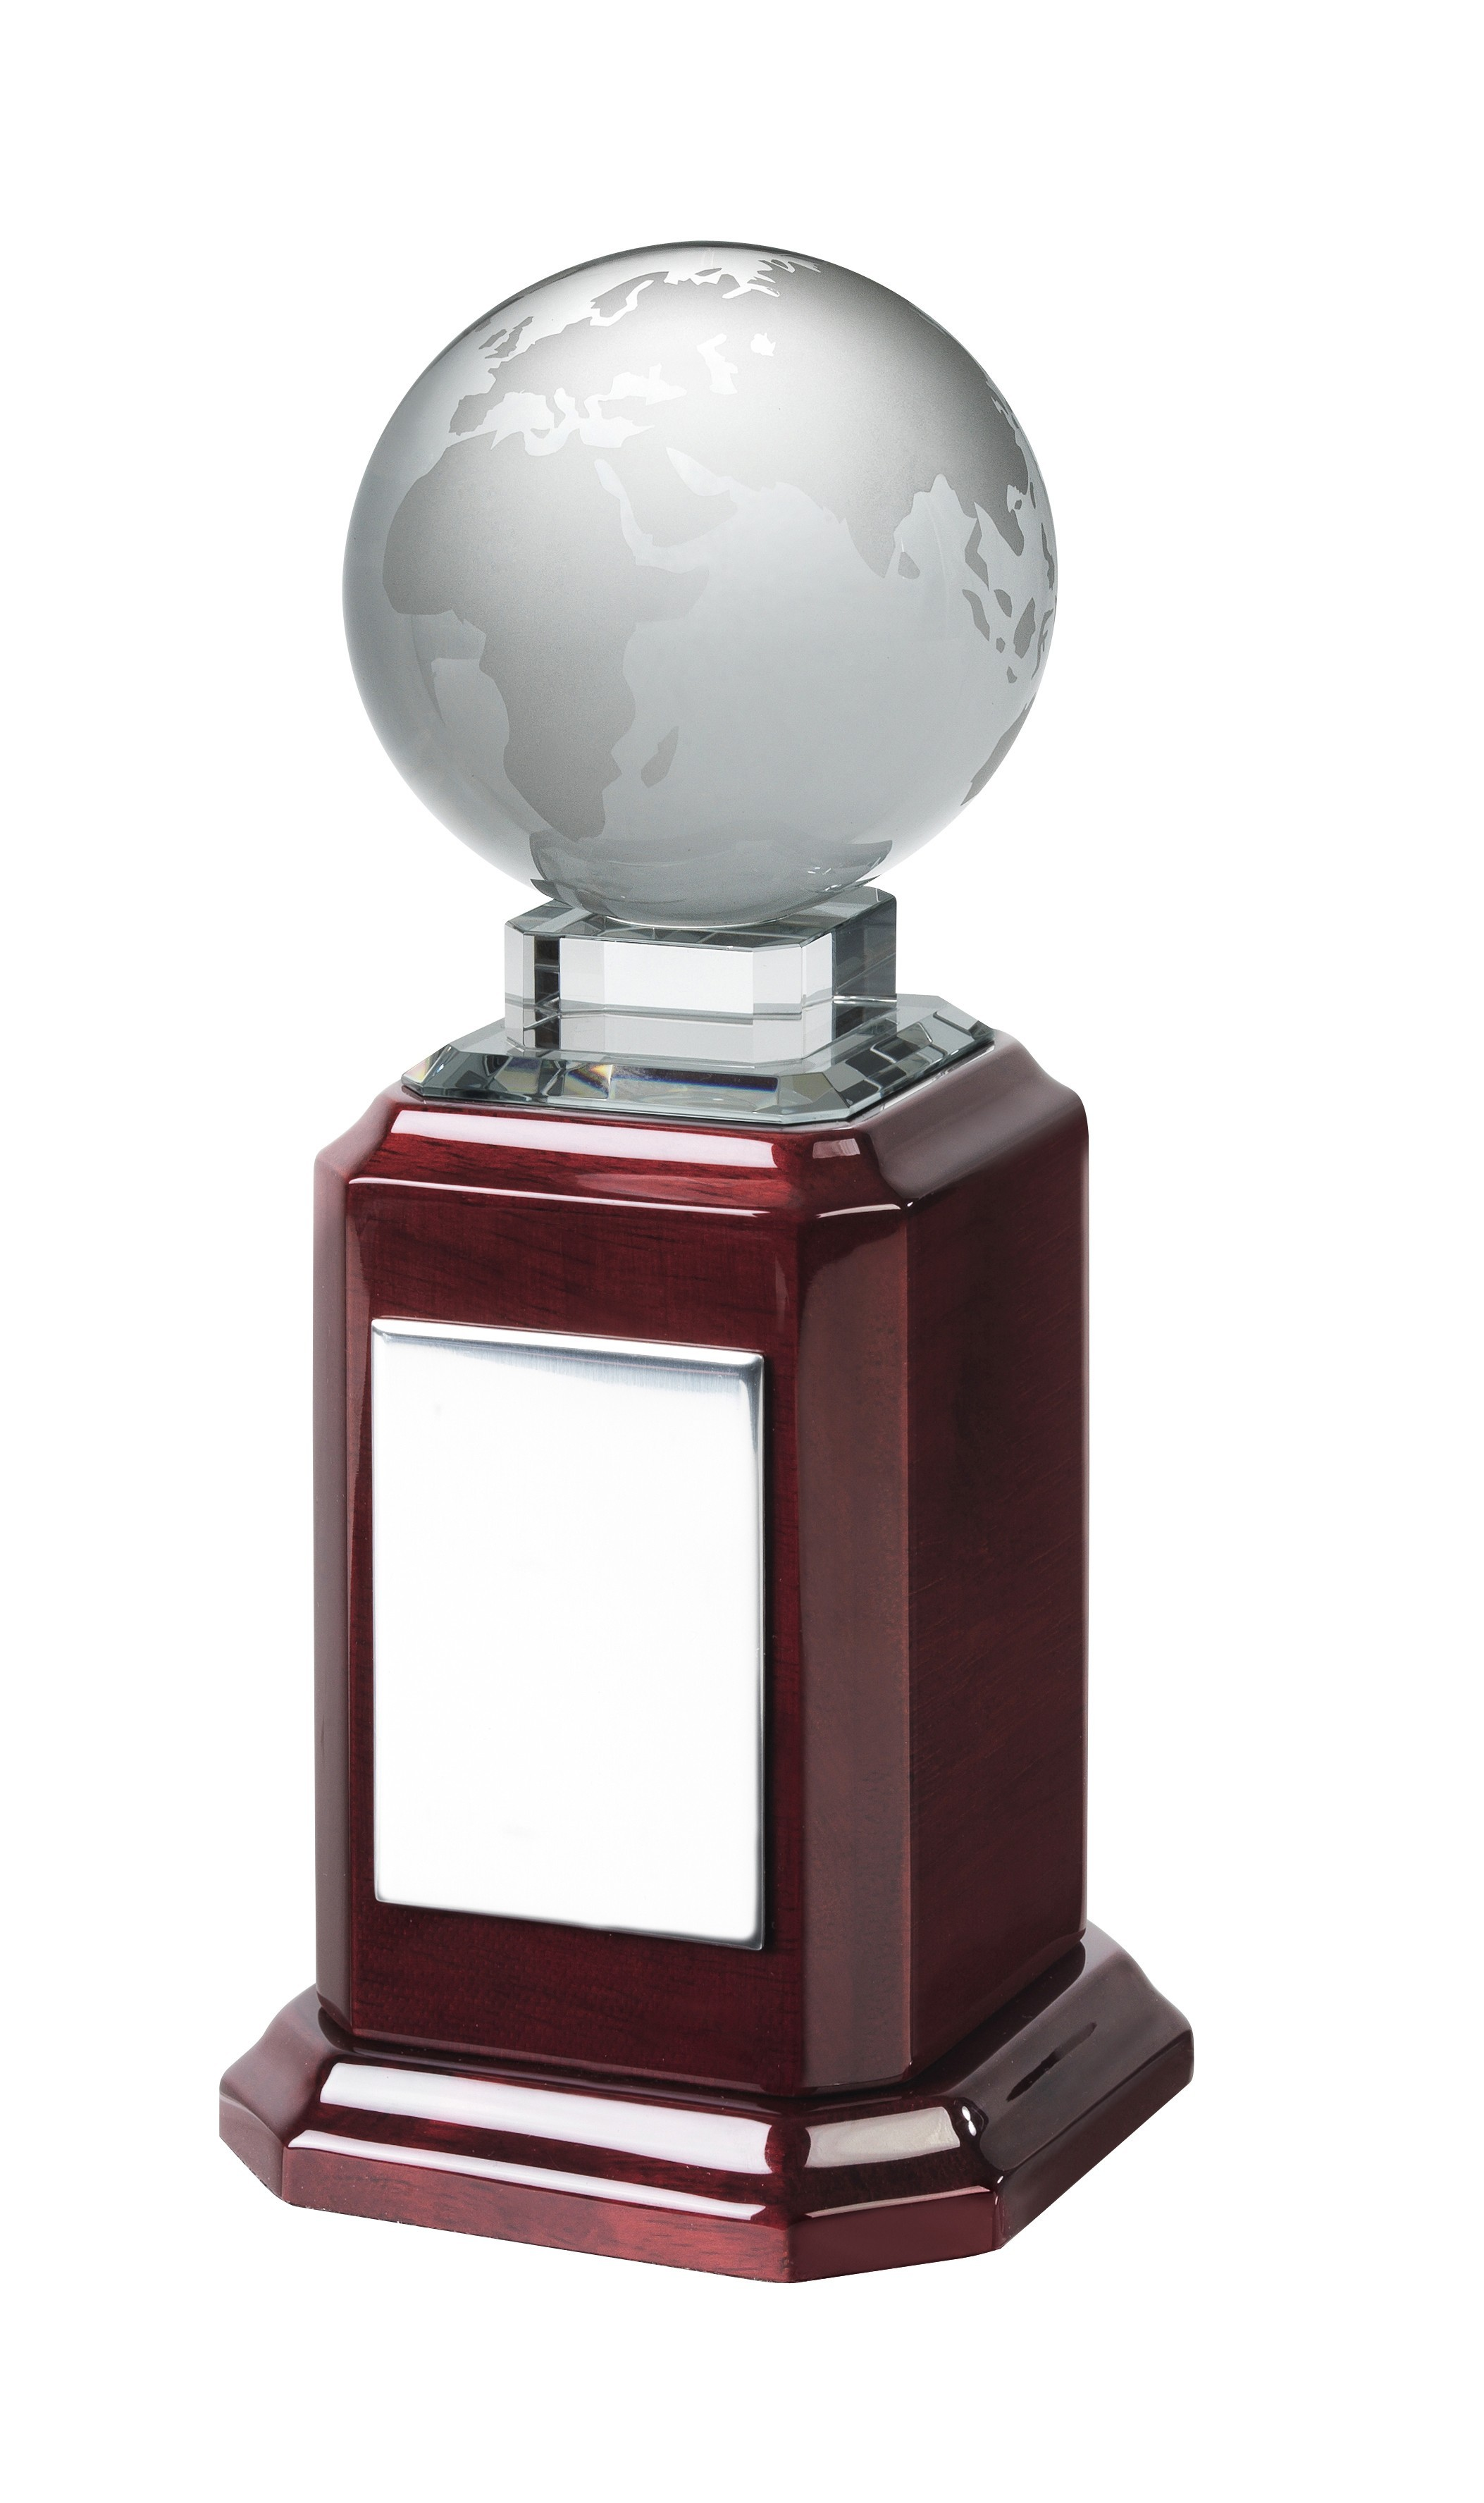 20cm Crystal Globe on Piano Wood Base